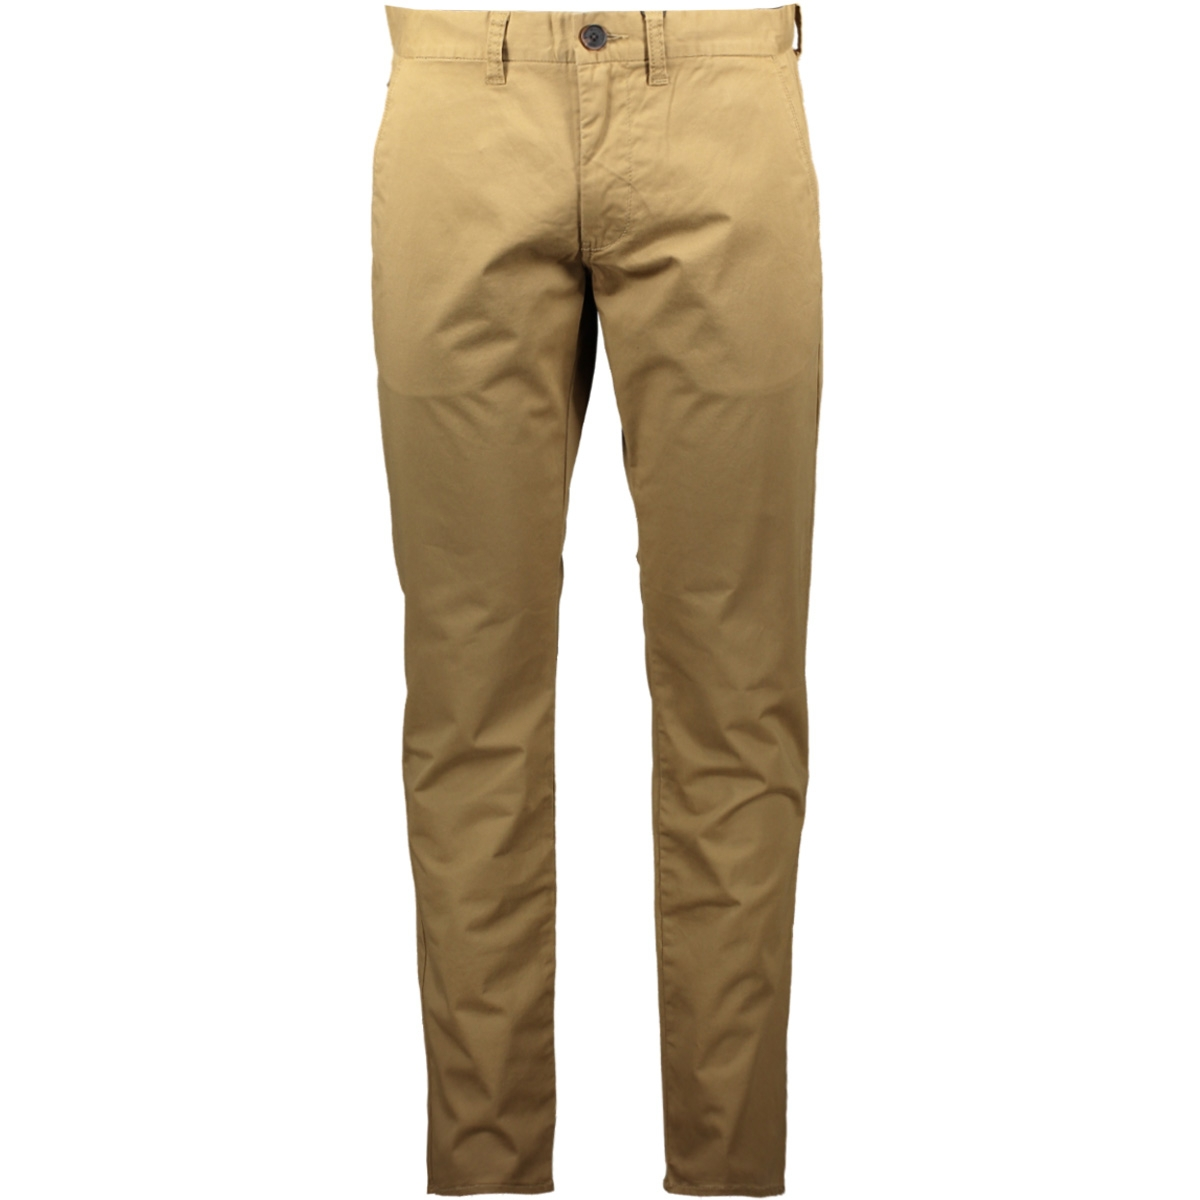 30203608 matinique broek 21145 warm khaki